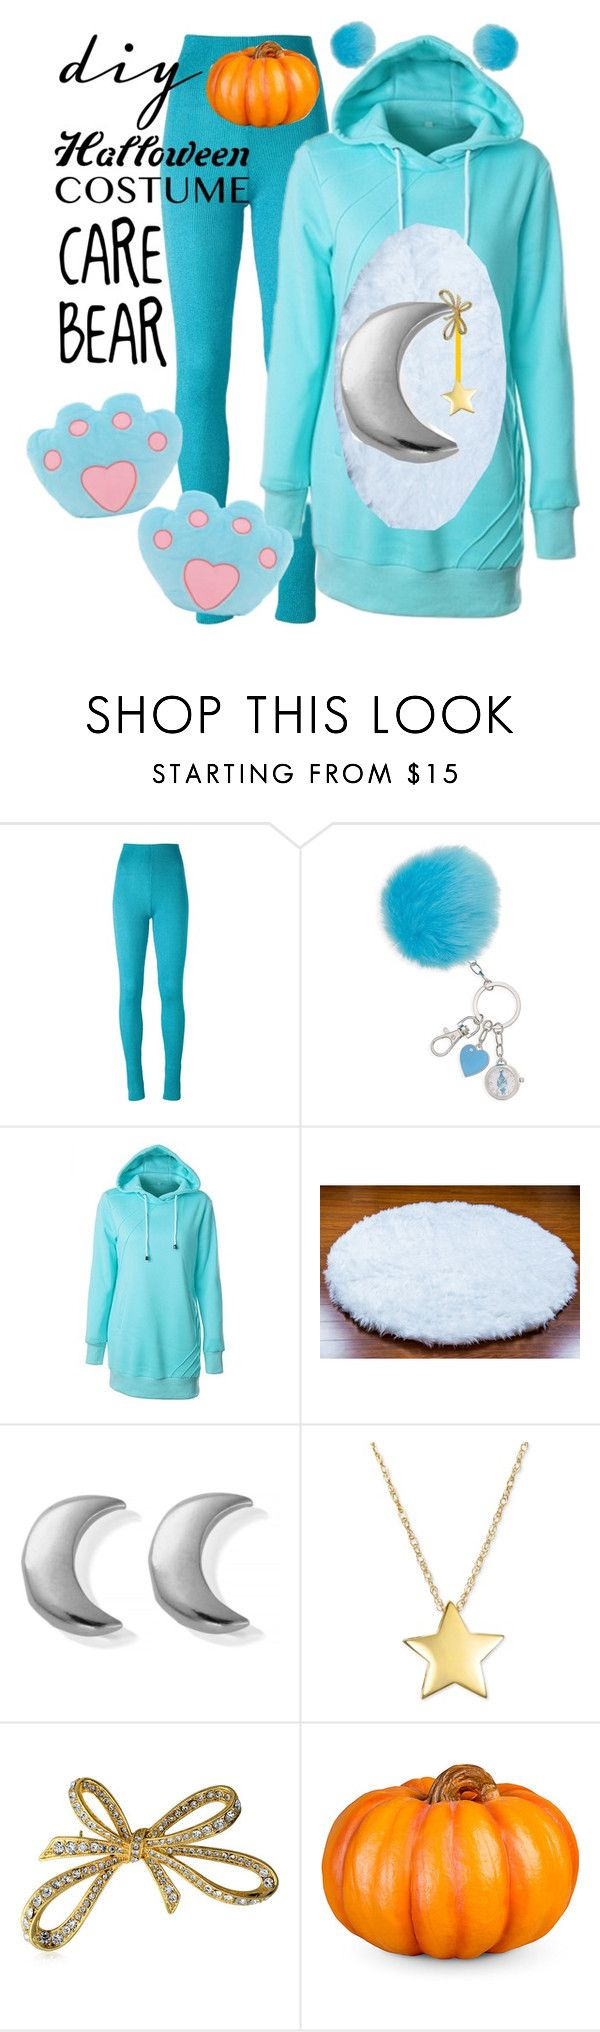 """diy Halloween costume: CARE BEAR "" by hungergame2003 ❤ liked on Polyvore featuring MARIOS, ChloBo, Bling Jewelry and Improvements"